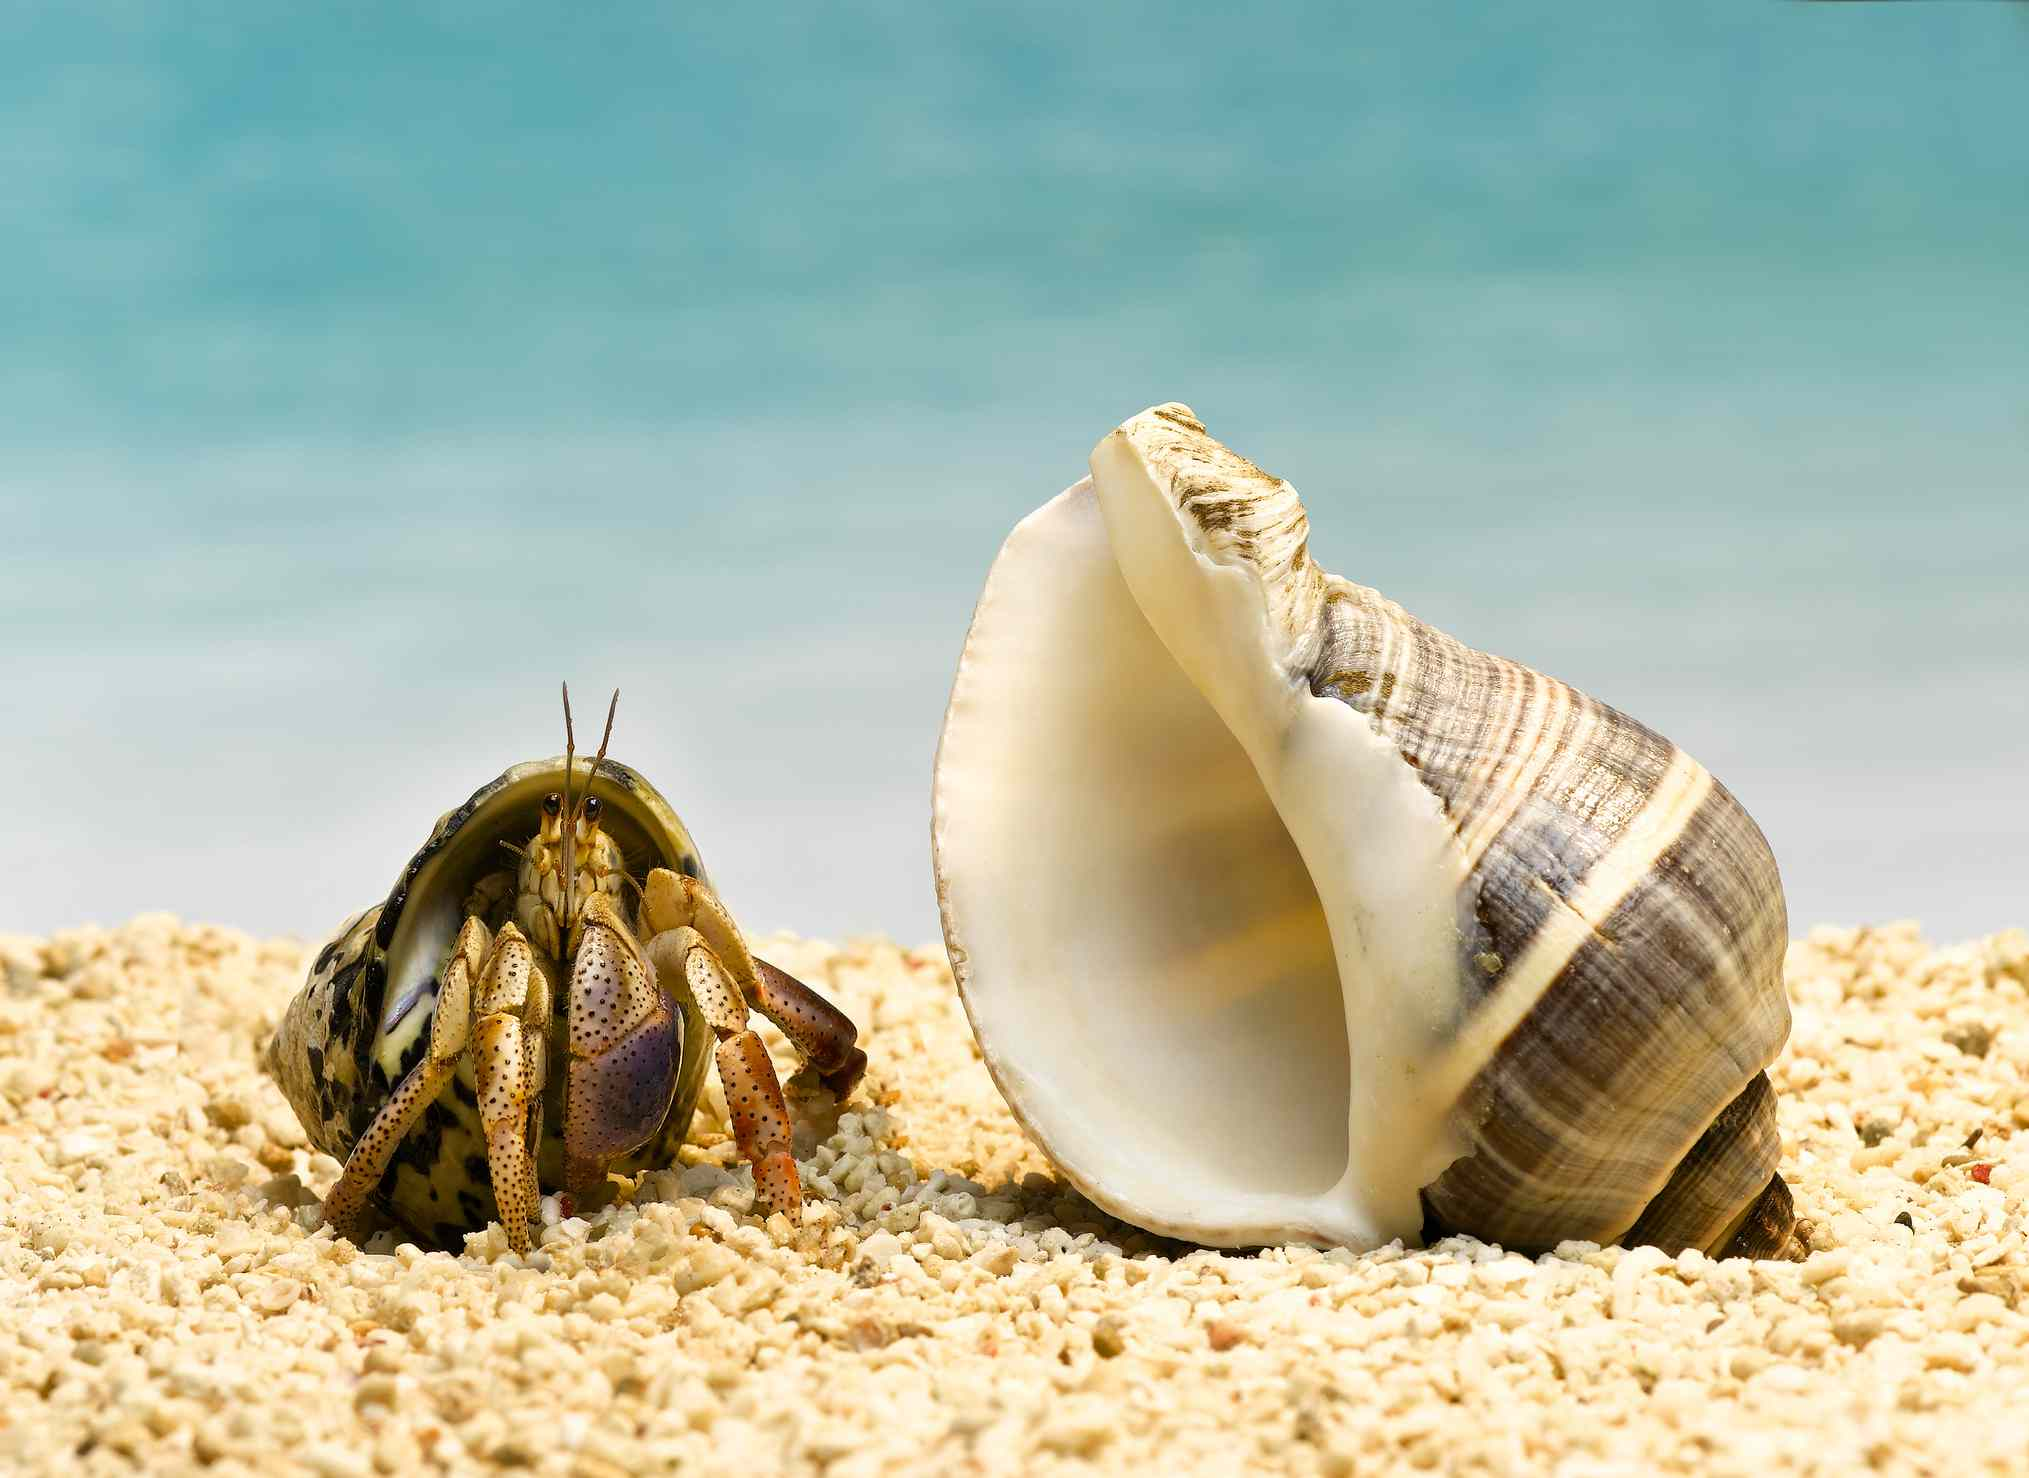 A hermit crab on sand next to a larger shell